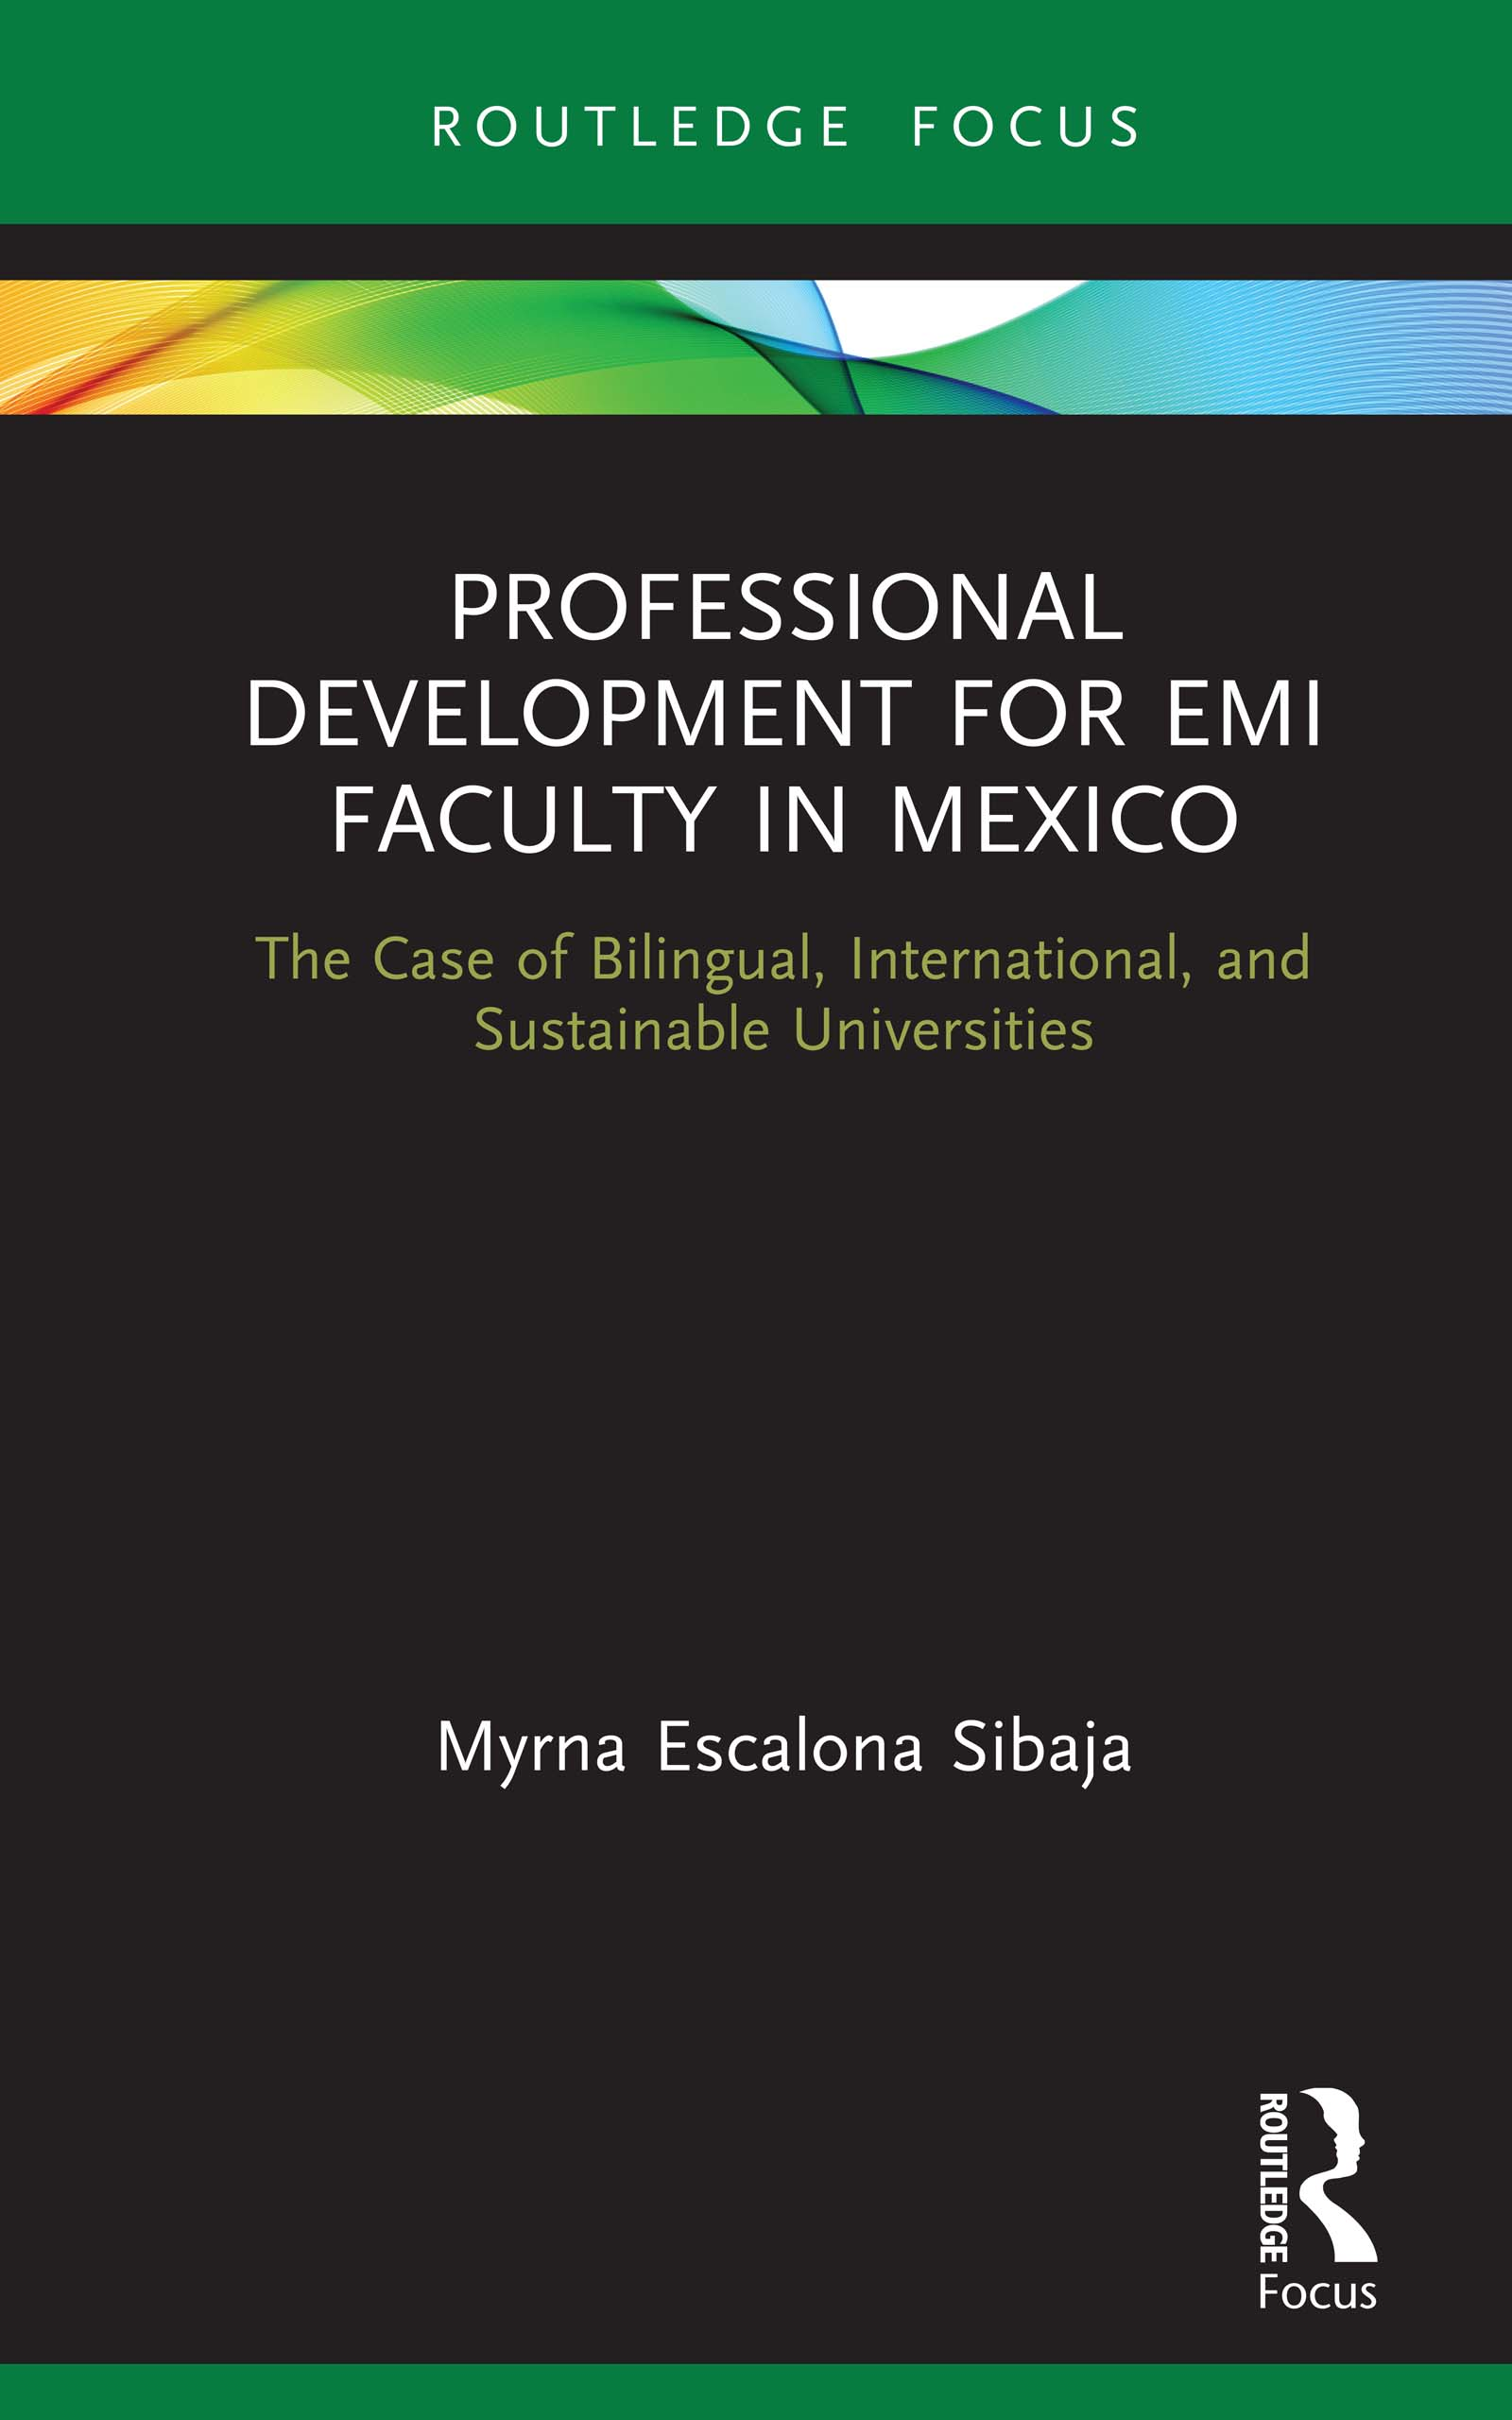 Professional Development for EMI Faculty in Mexico